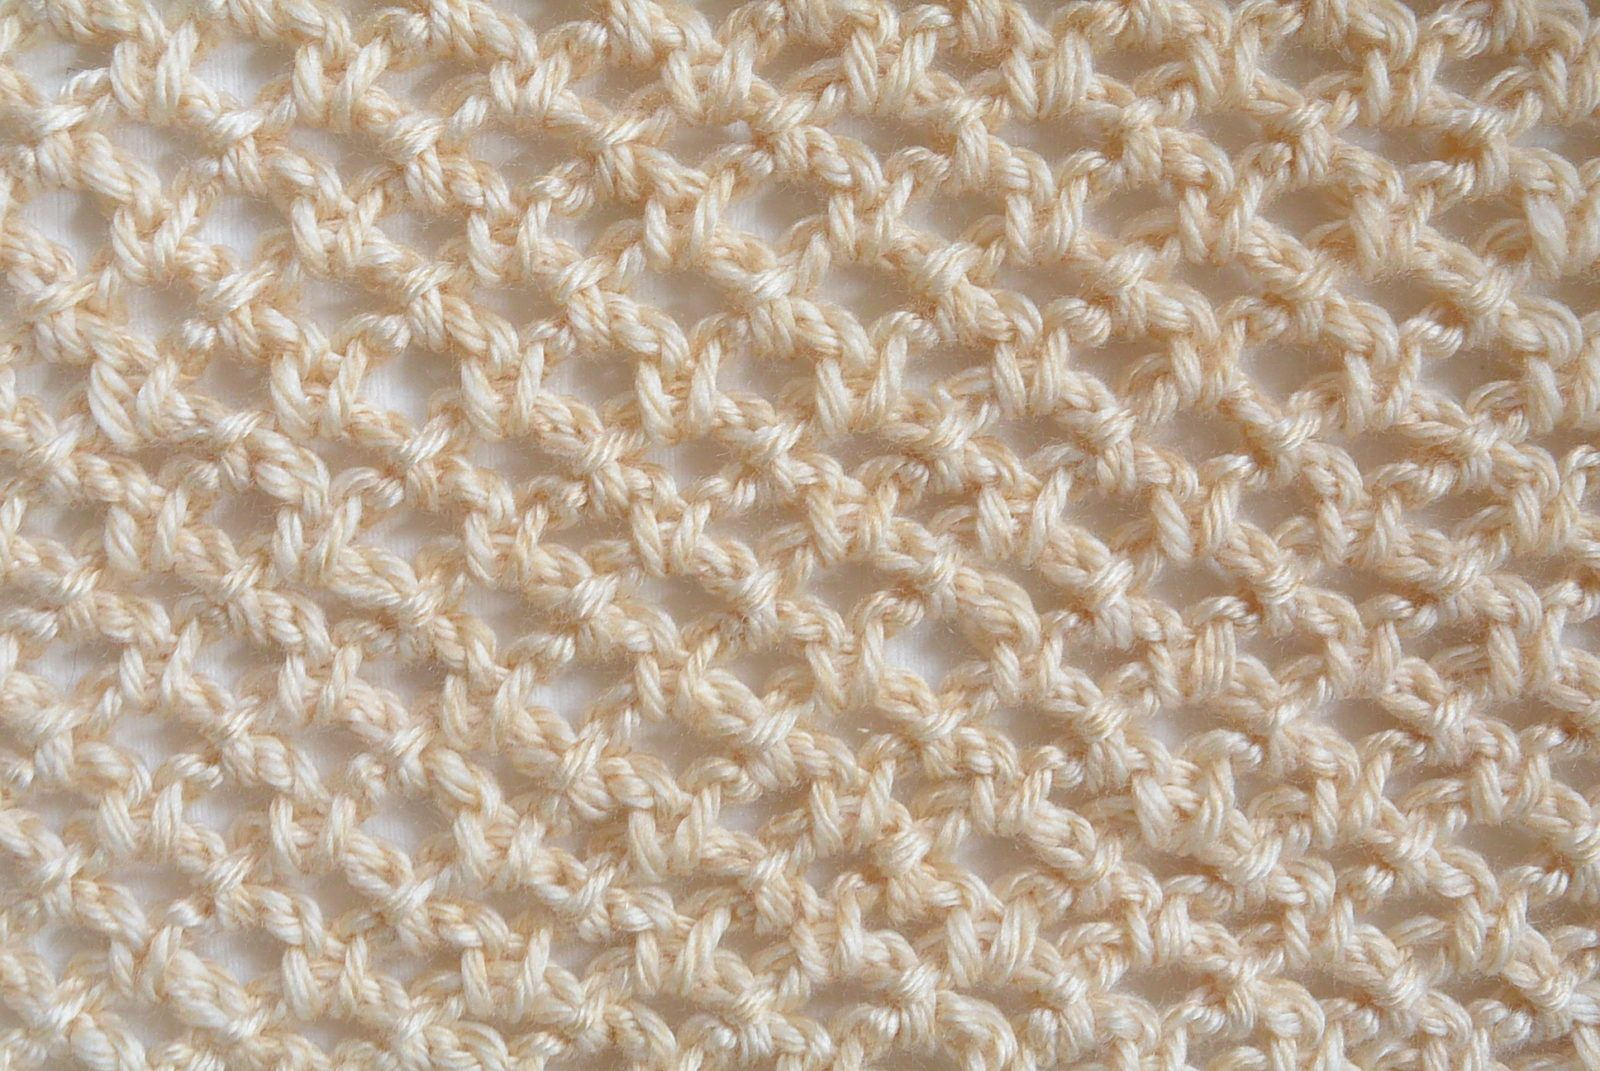 How To Crochet An Easy Mesh Stitch | Crochet, Patterns and Crochet ...